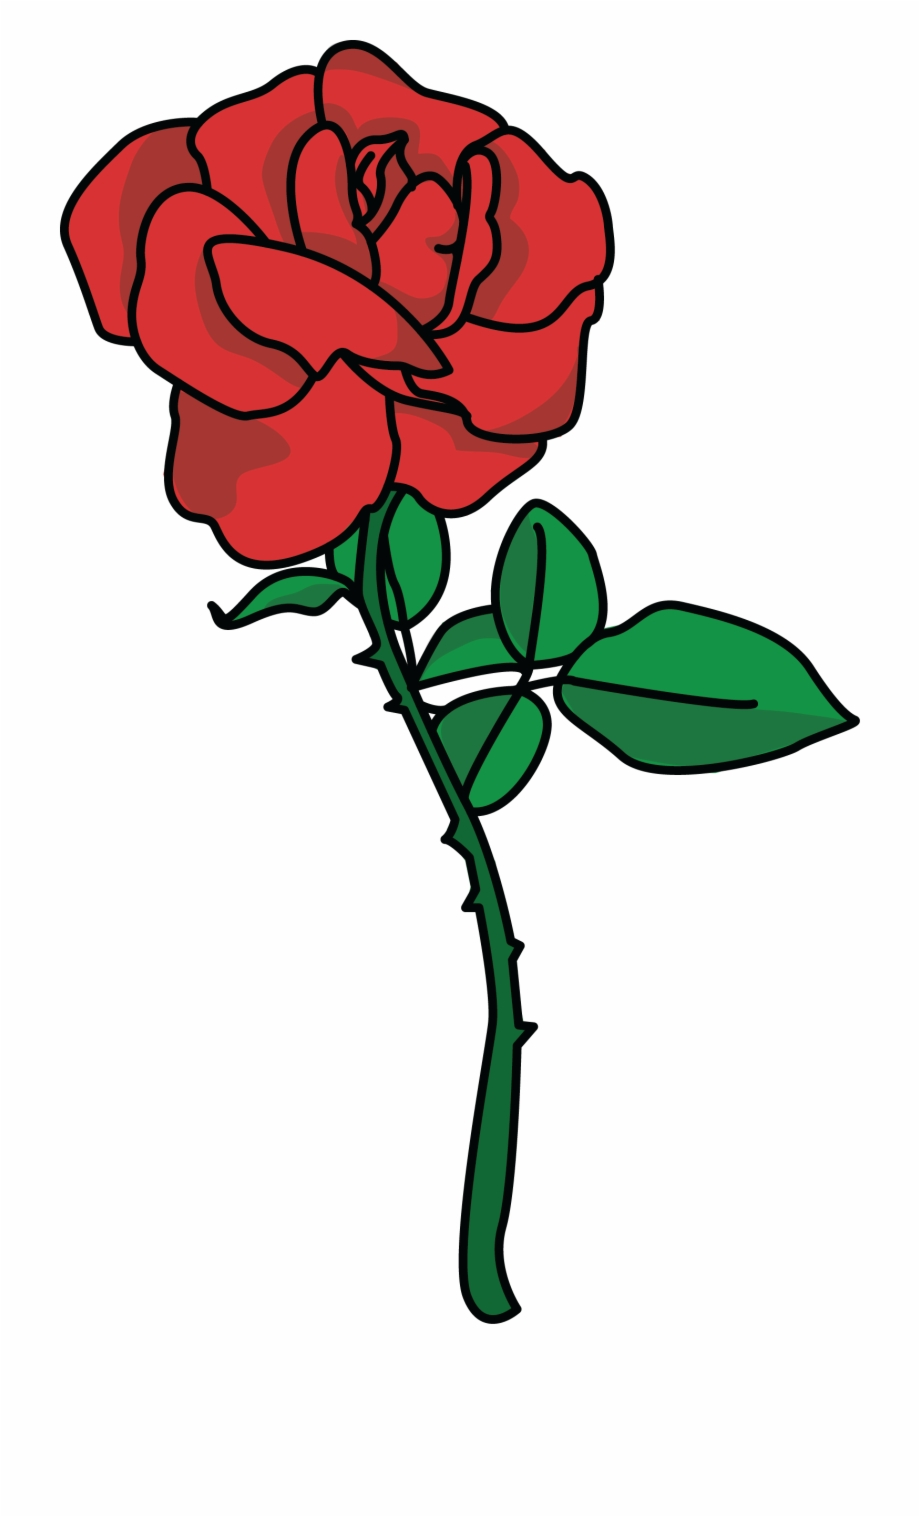 Rose clipart image vector royalty free download Rose Clip Art 10 Clipart - Rose Clipart Free PNG Images ... vector royalty free download